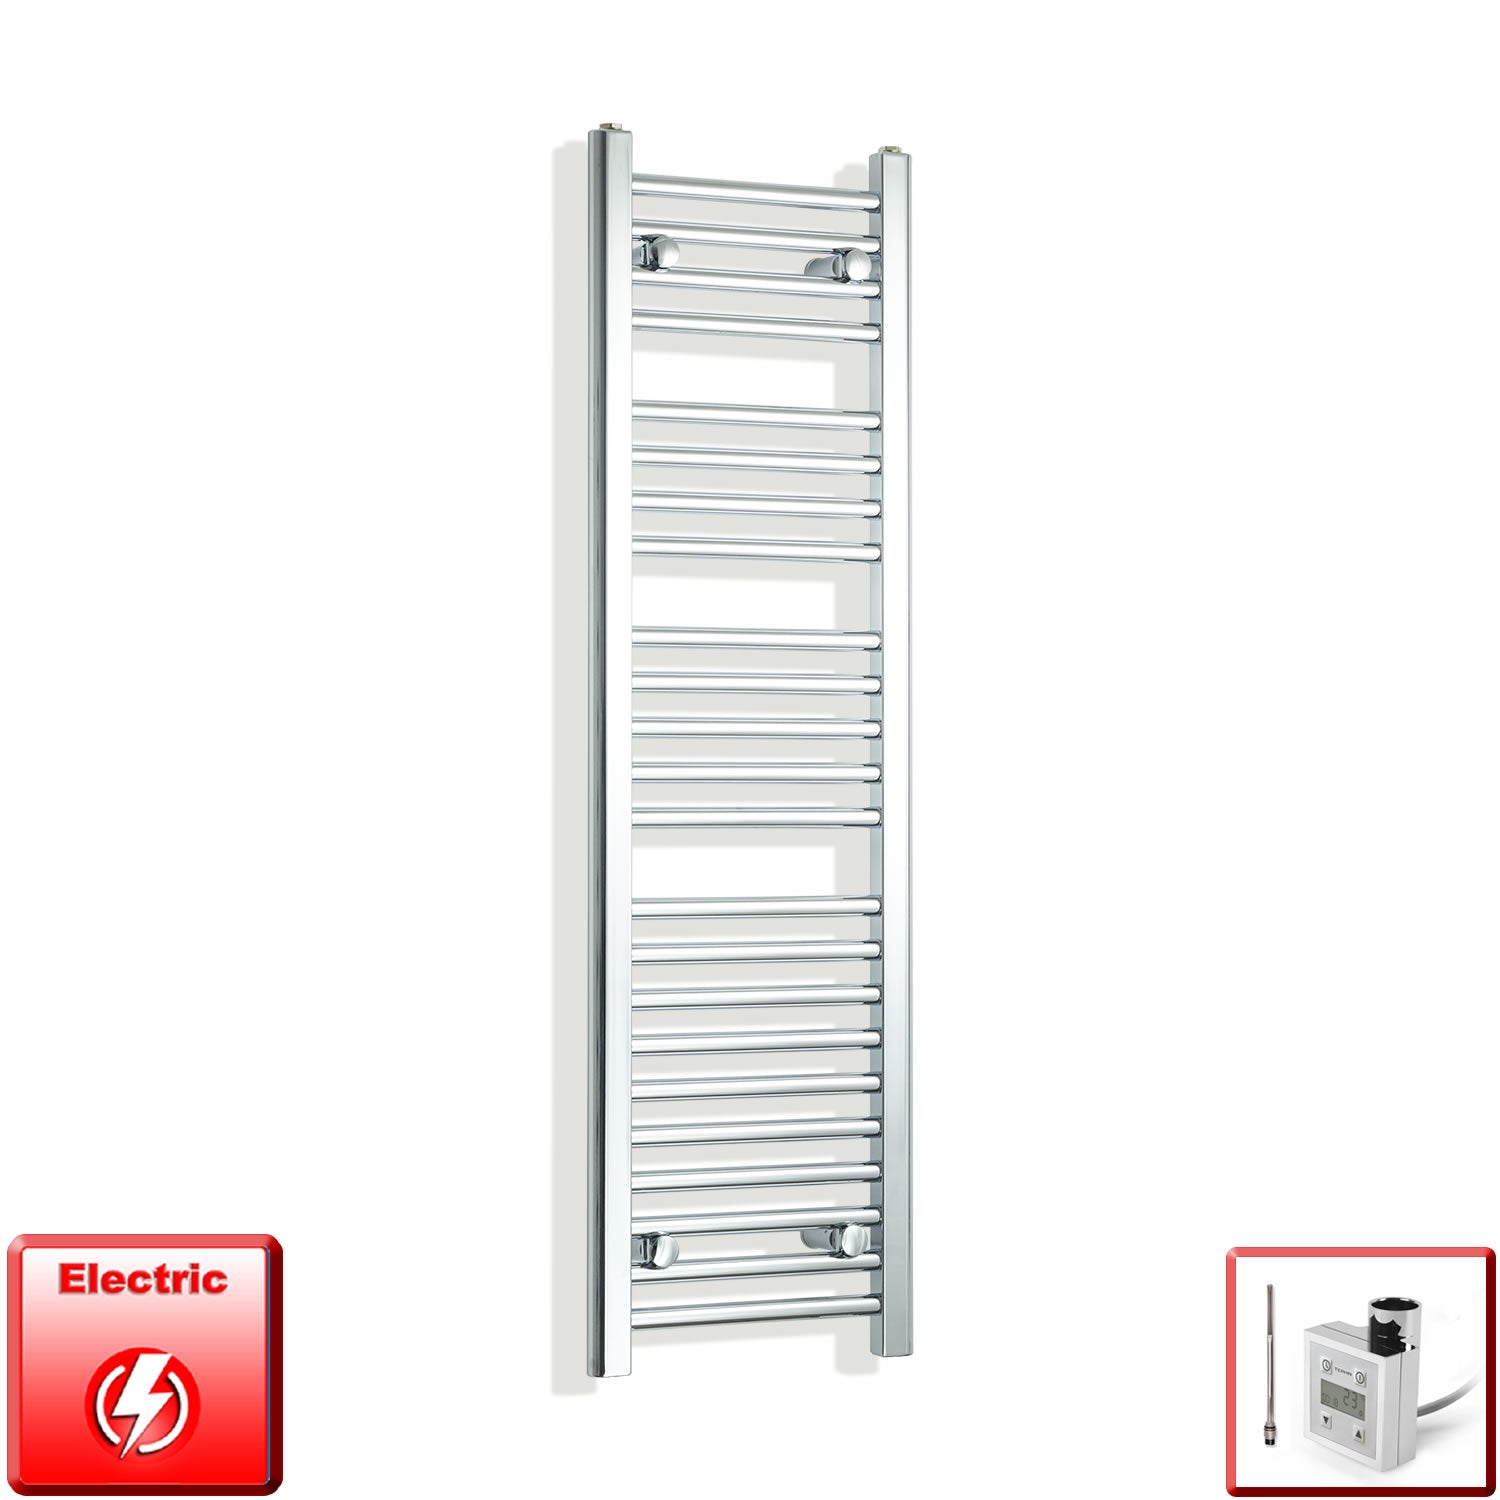 300mm Wide 1200mm High Flat Chrome Pre-Filled Electric Heated Towel Rail Radiator HTR,KTX-3 Thermostatic Element